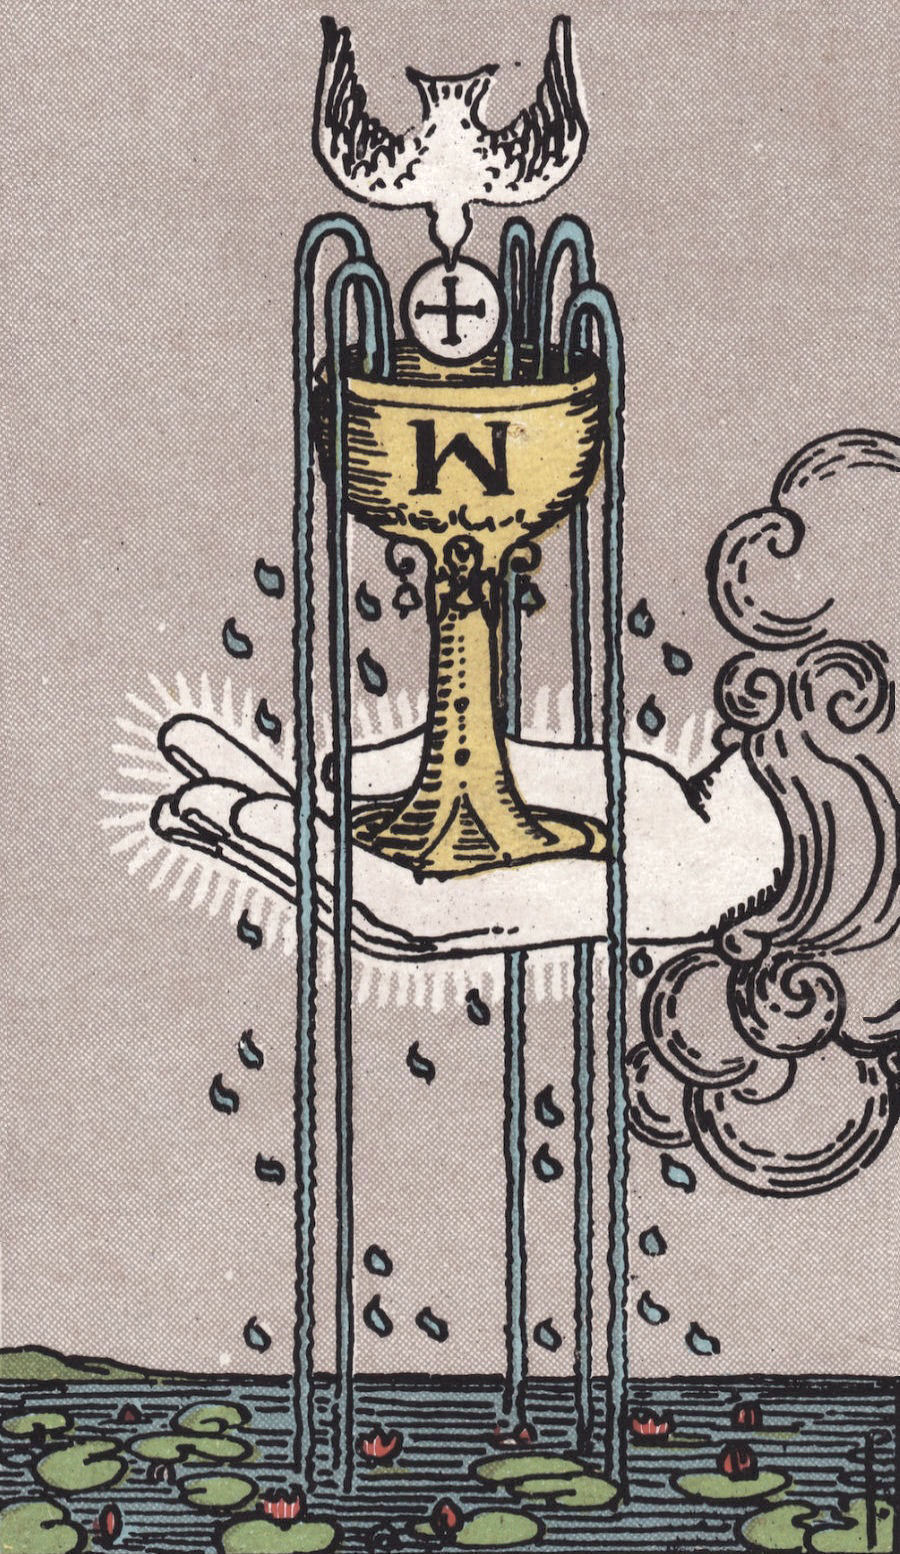 Rider Waite Smith Ace of Cups Tarot Card Meaning